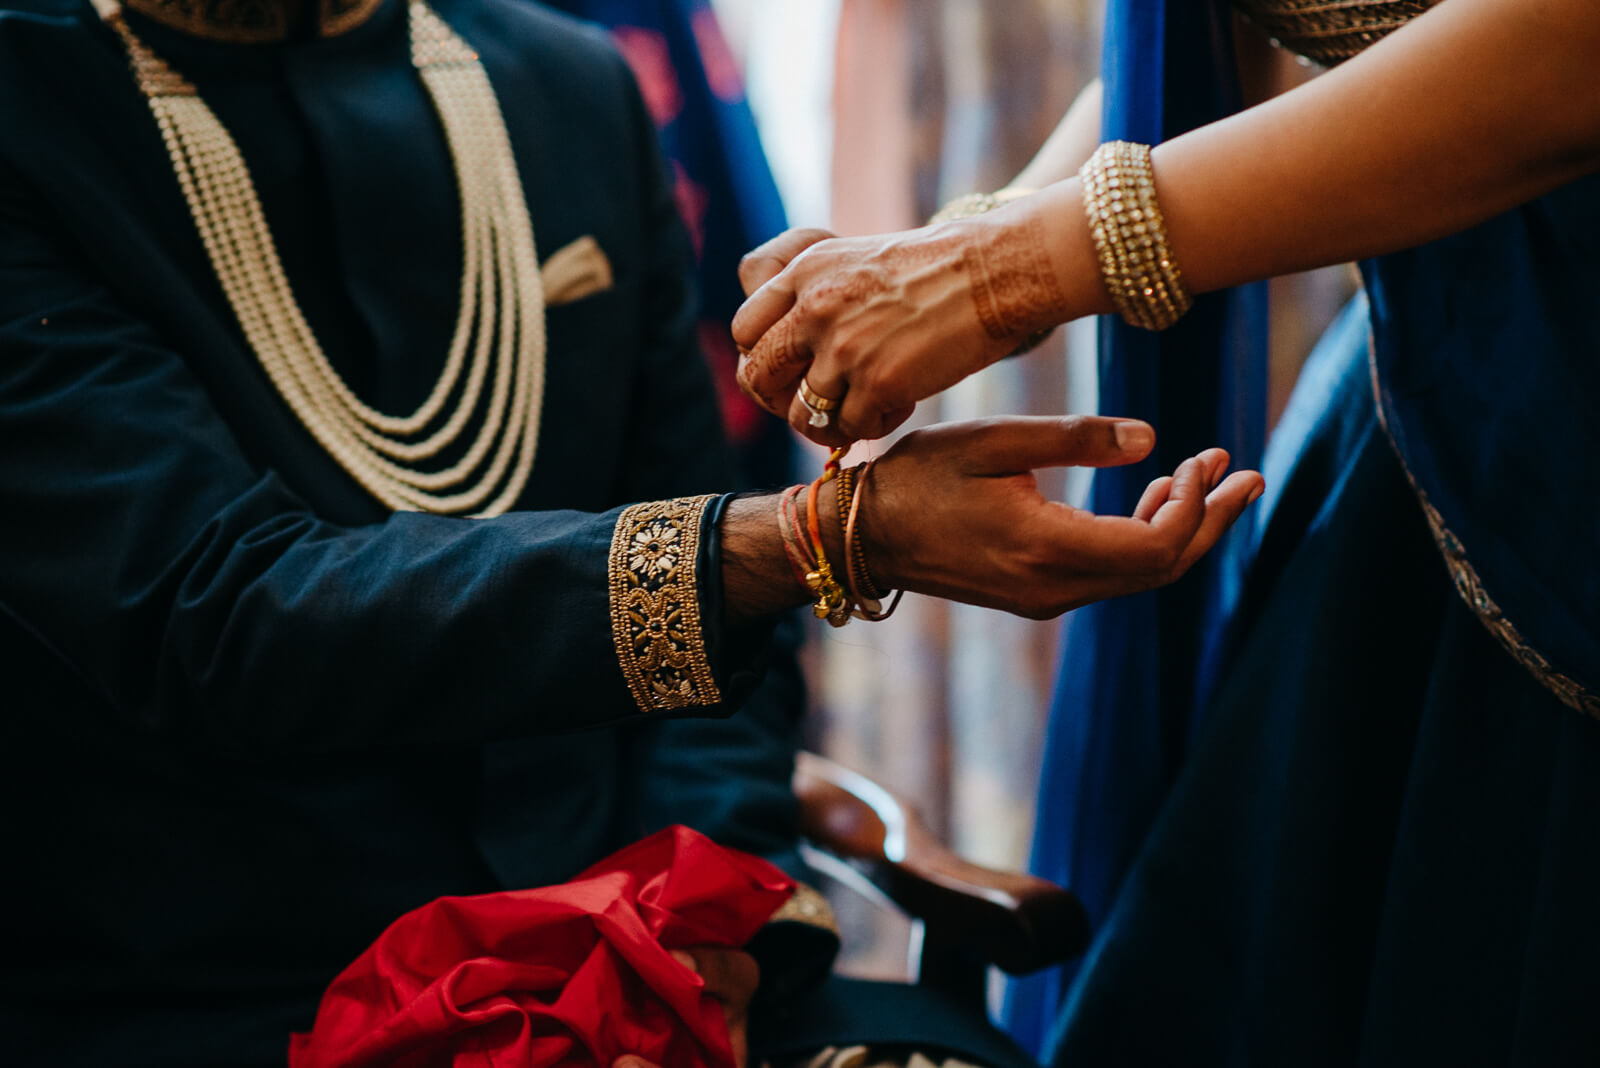 Hindu groom has bracelets placed on his wrist